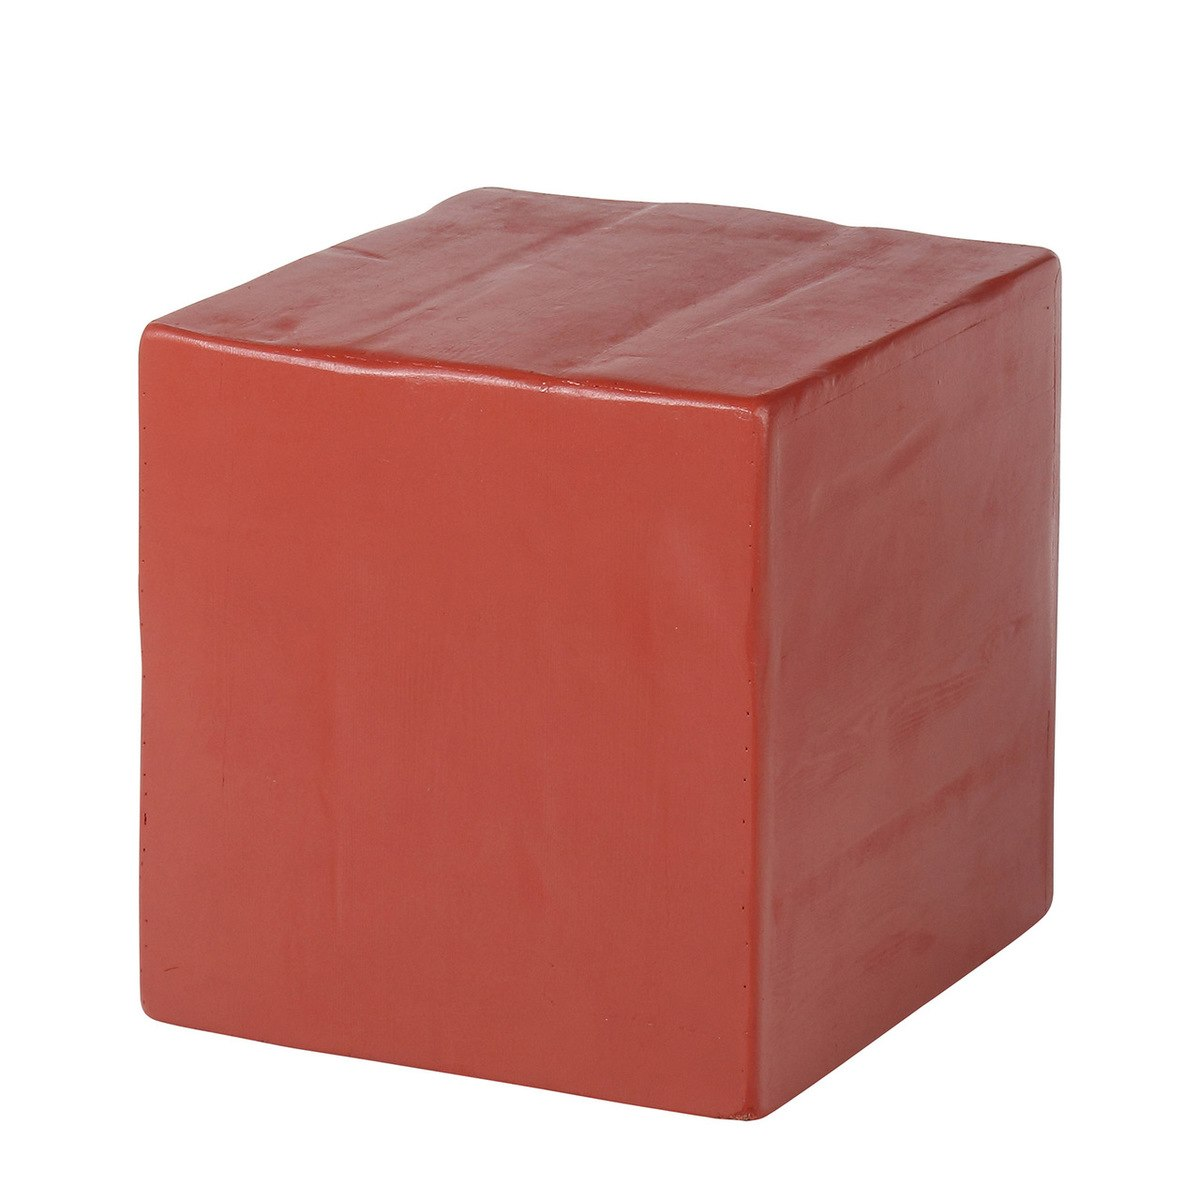 usa made navajo red cube accent stool side table ott main marble desk distressed metal vintage oriental lamps patio umbrella base teak garden furniture set modern nic grill